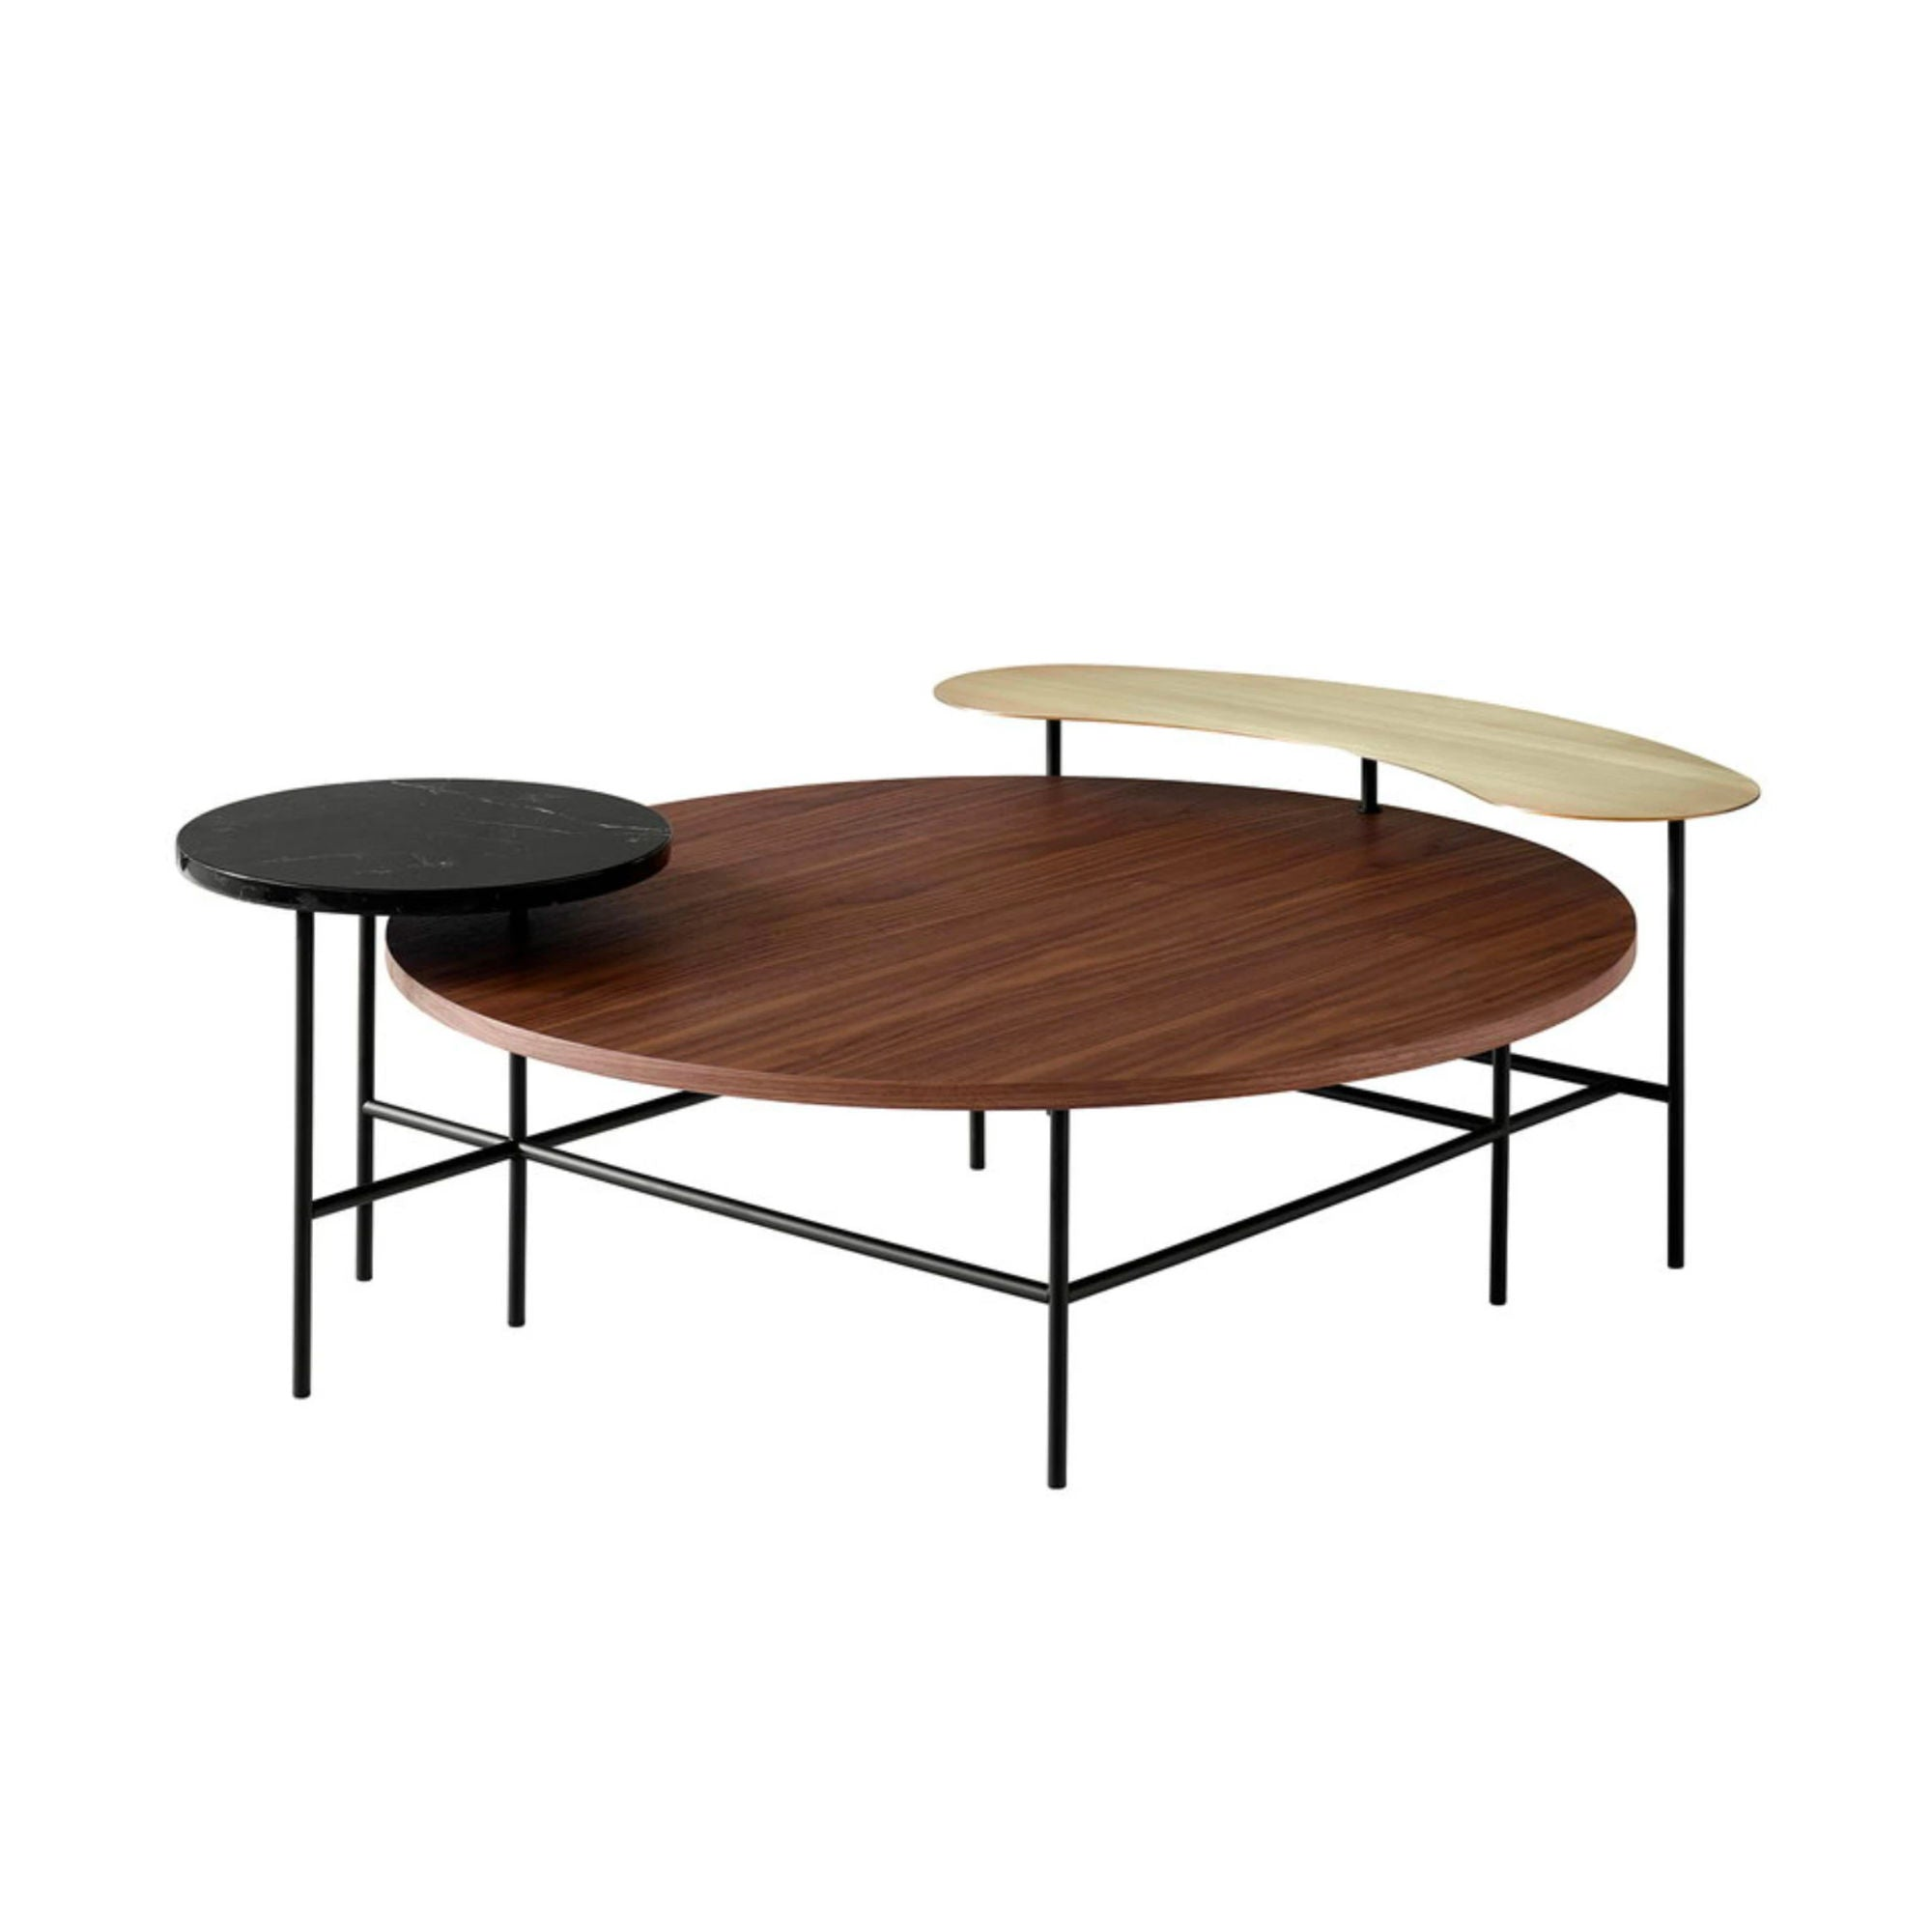 &Tradition JH25 Palette Lounge Table , Walnut